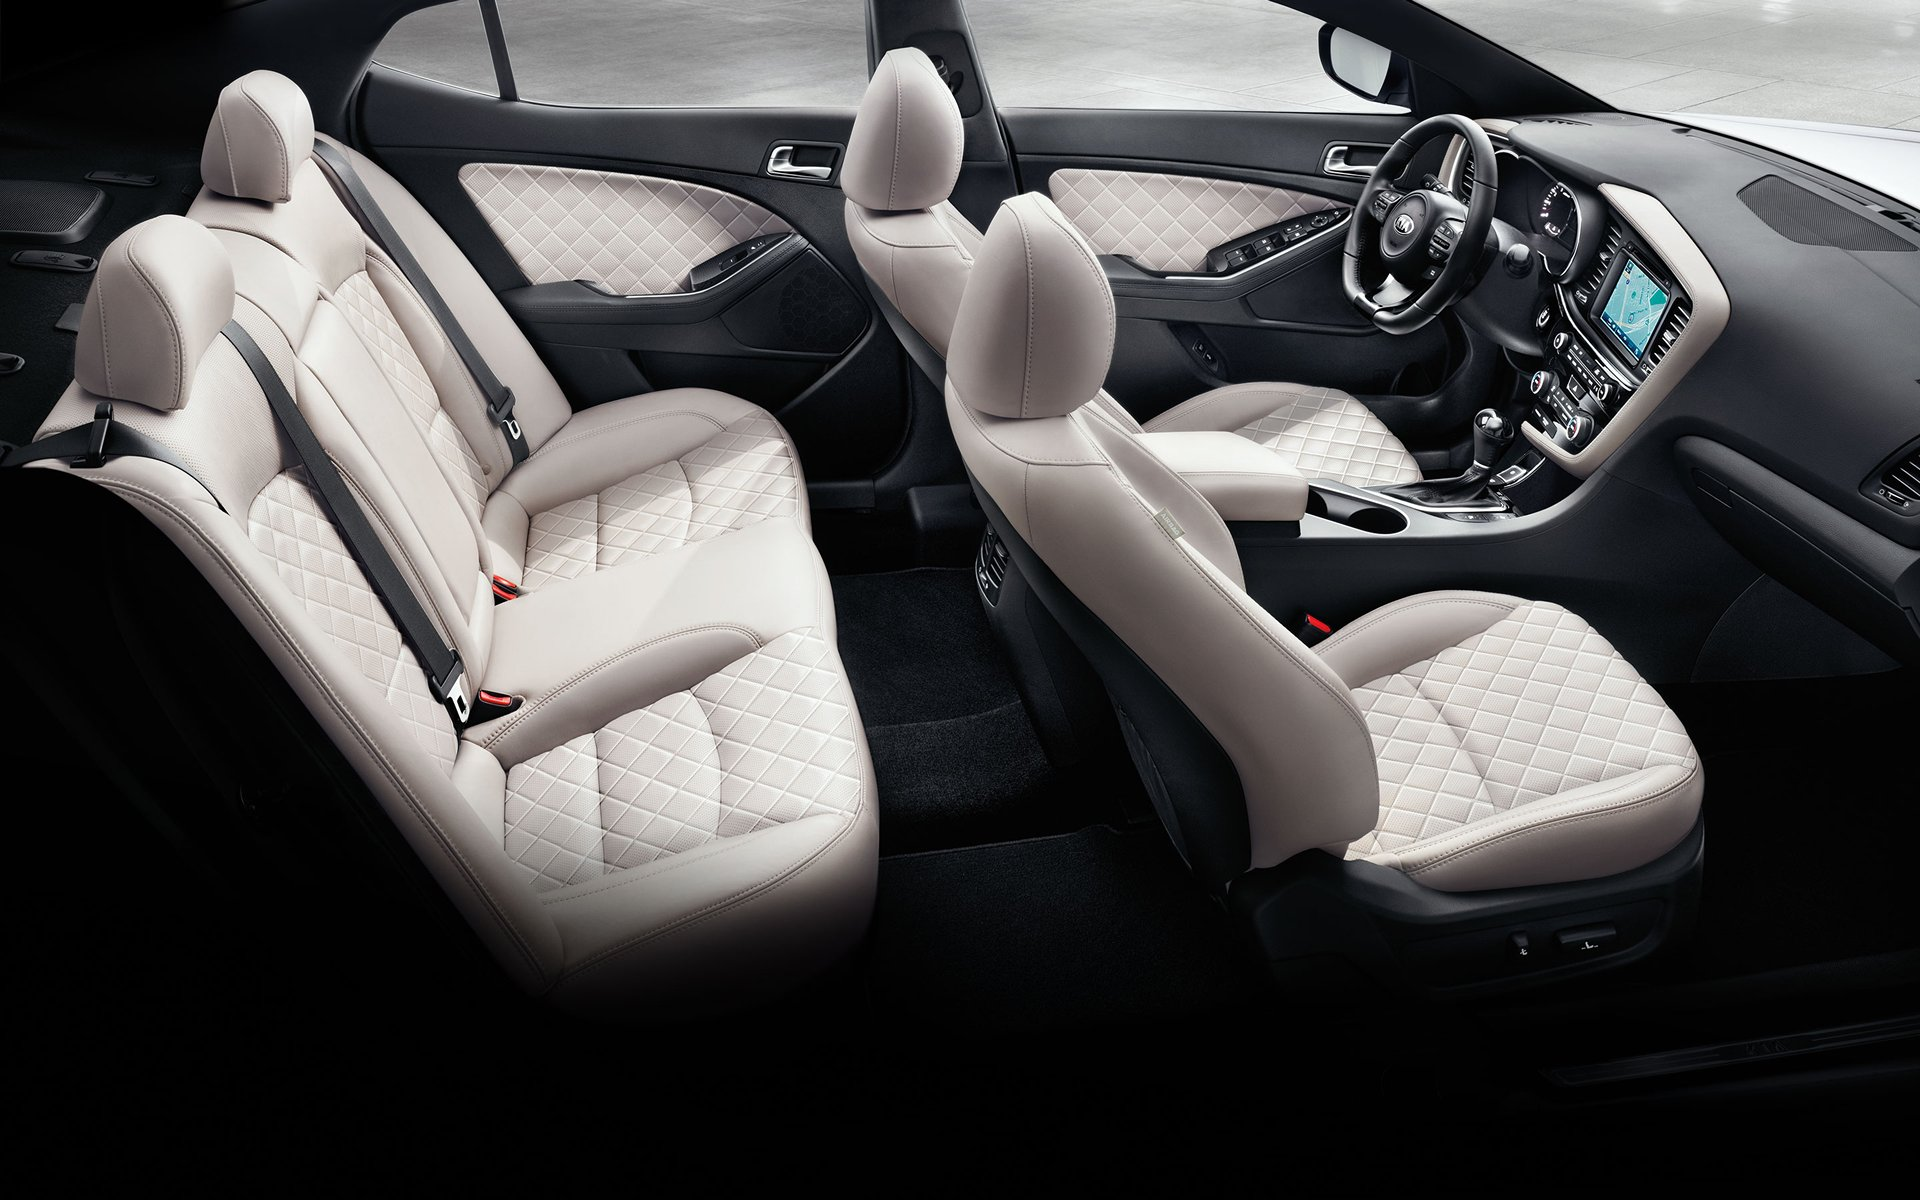 background_optima_2014_interior--kia-1920x-jpg